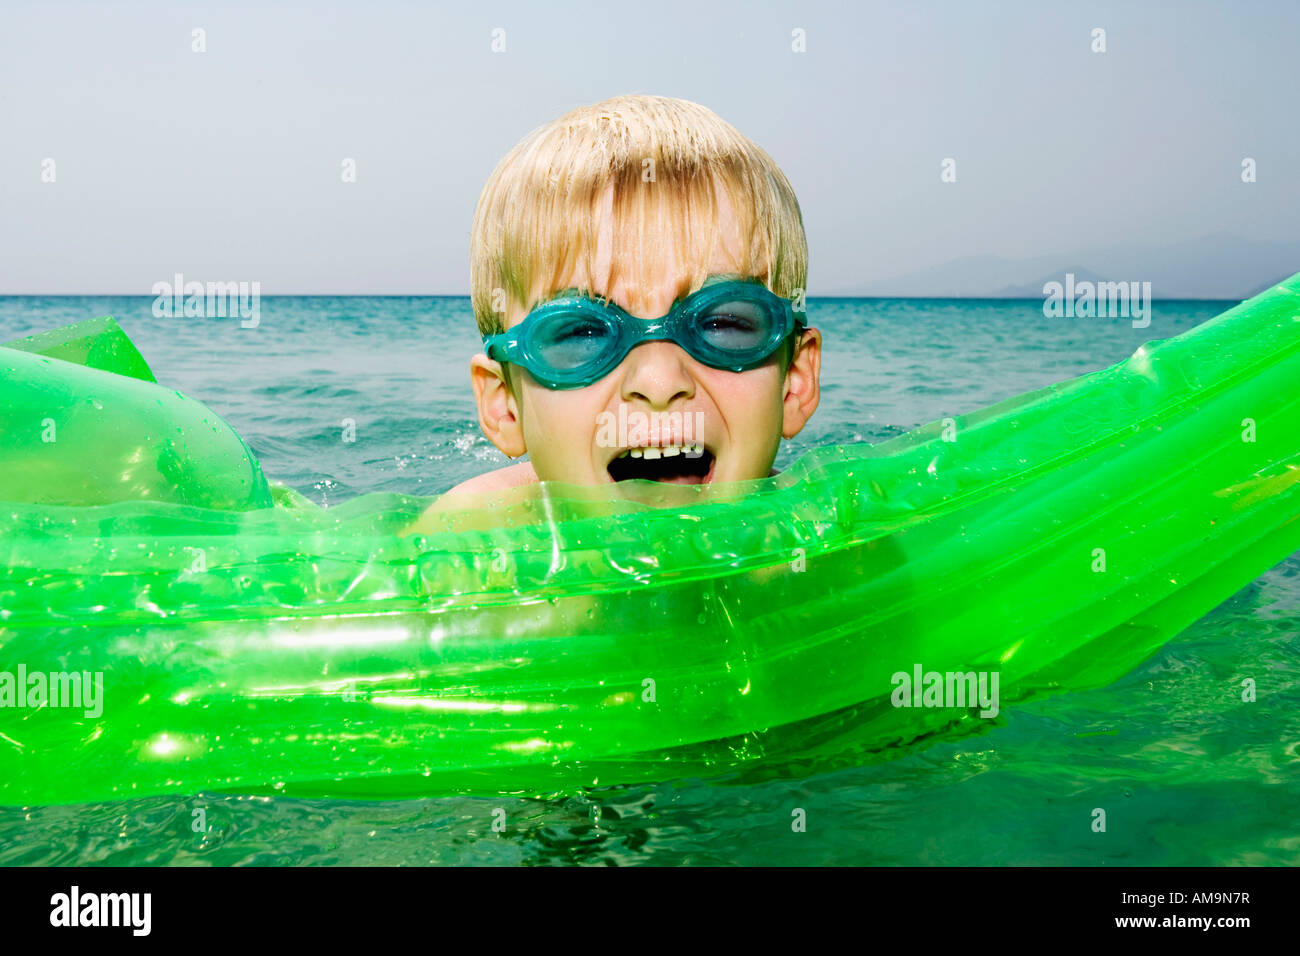 Young boy with an inflatable raft in the water with mouth open. Stock Photo